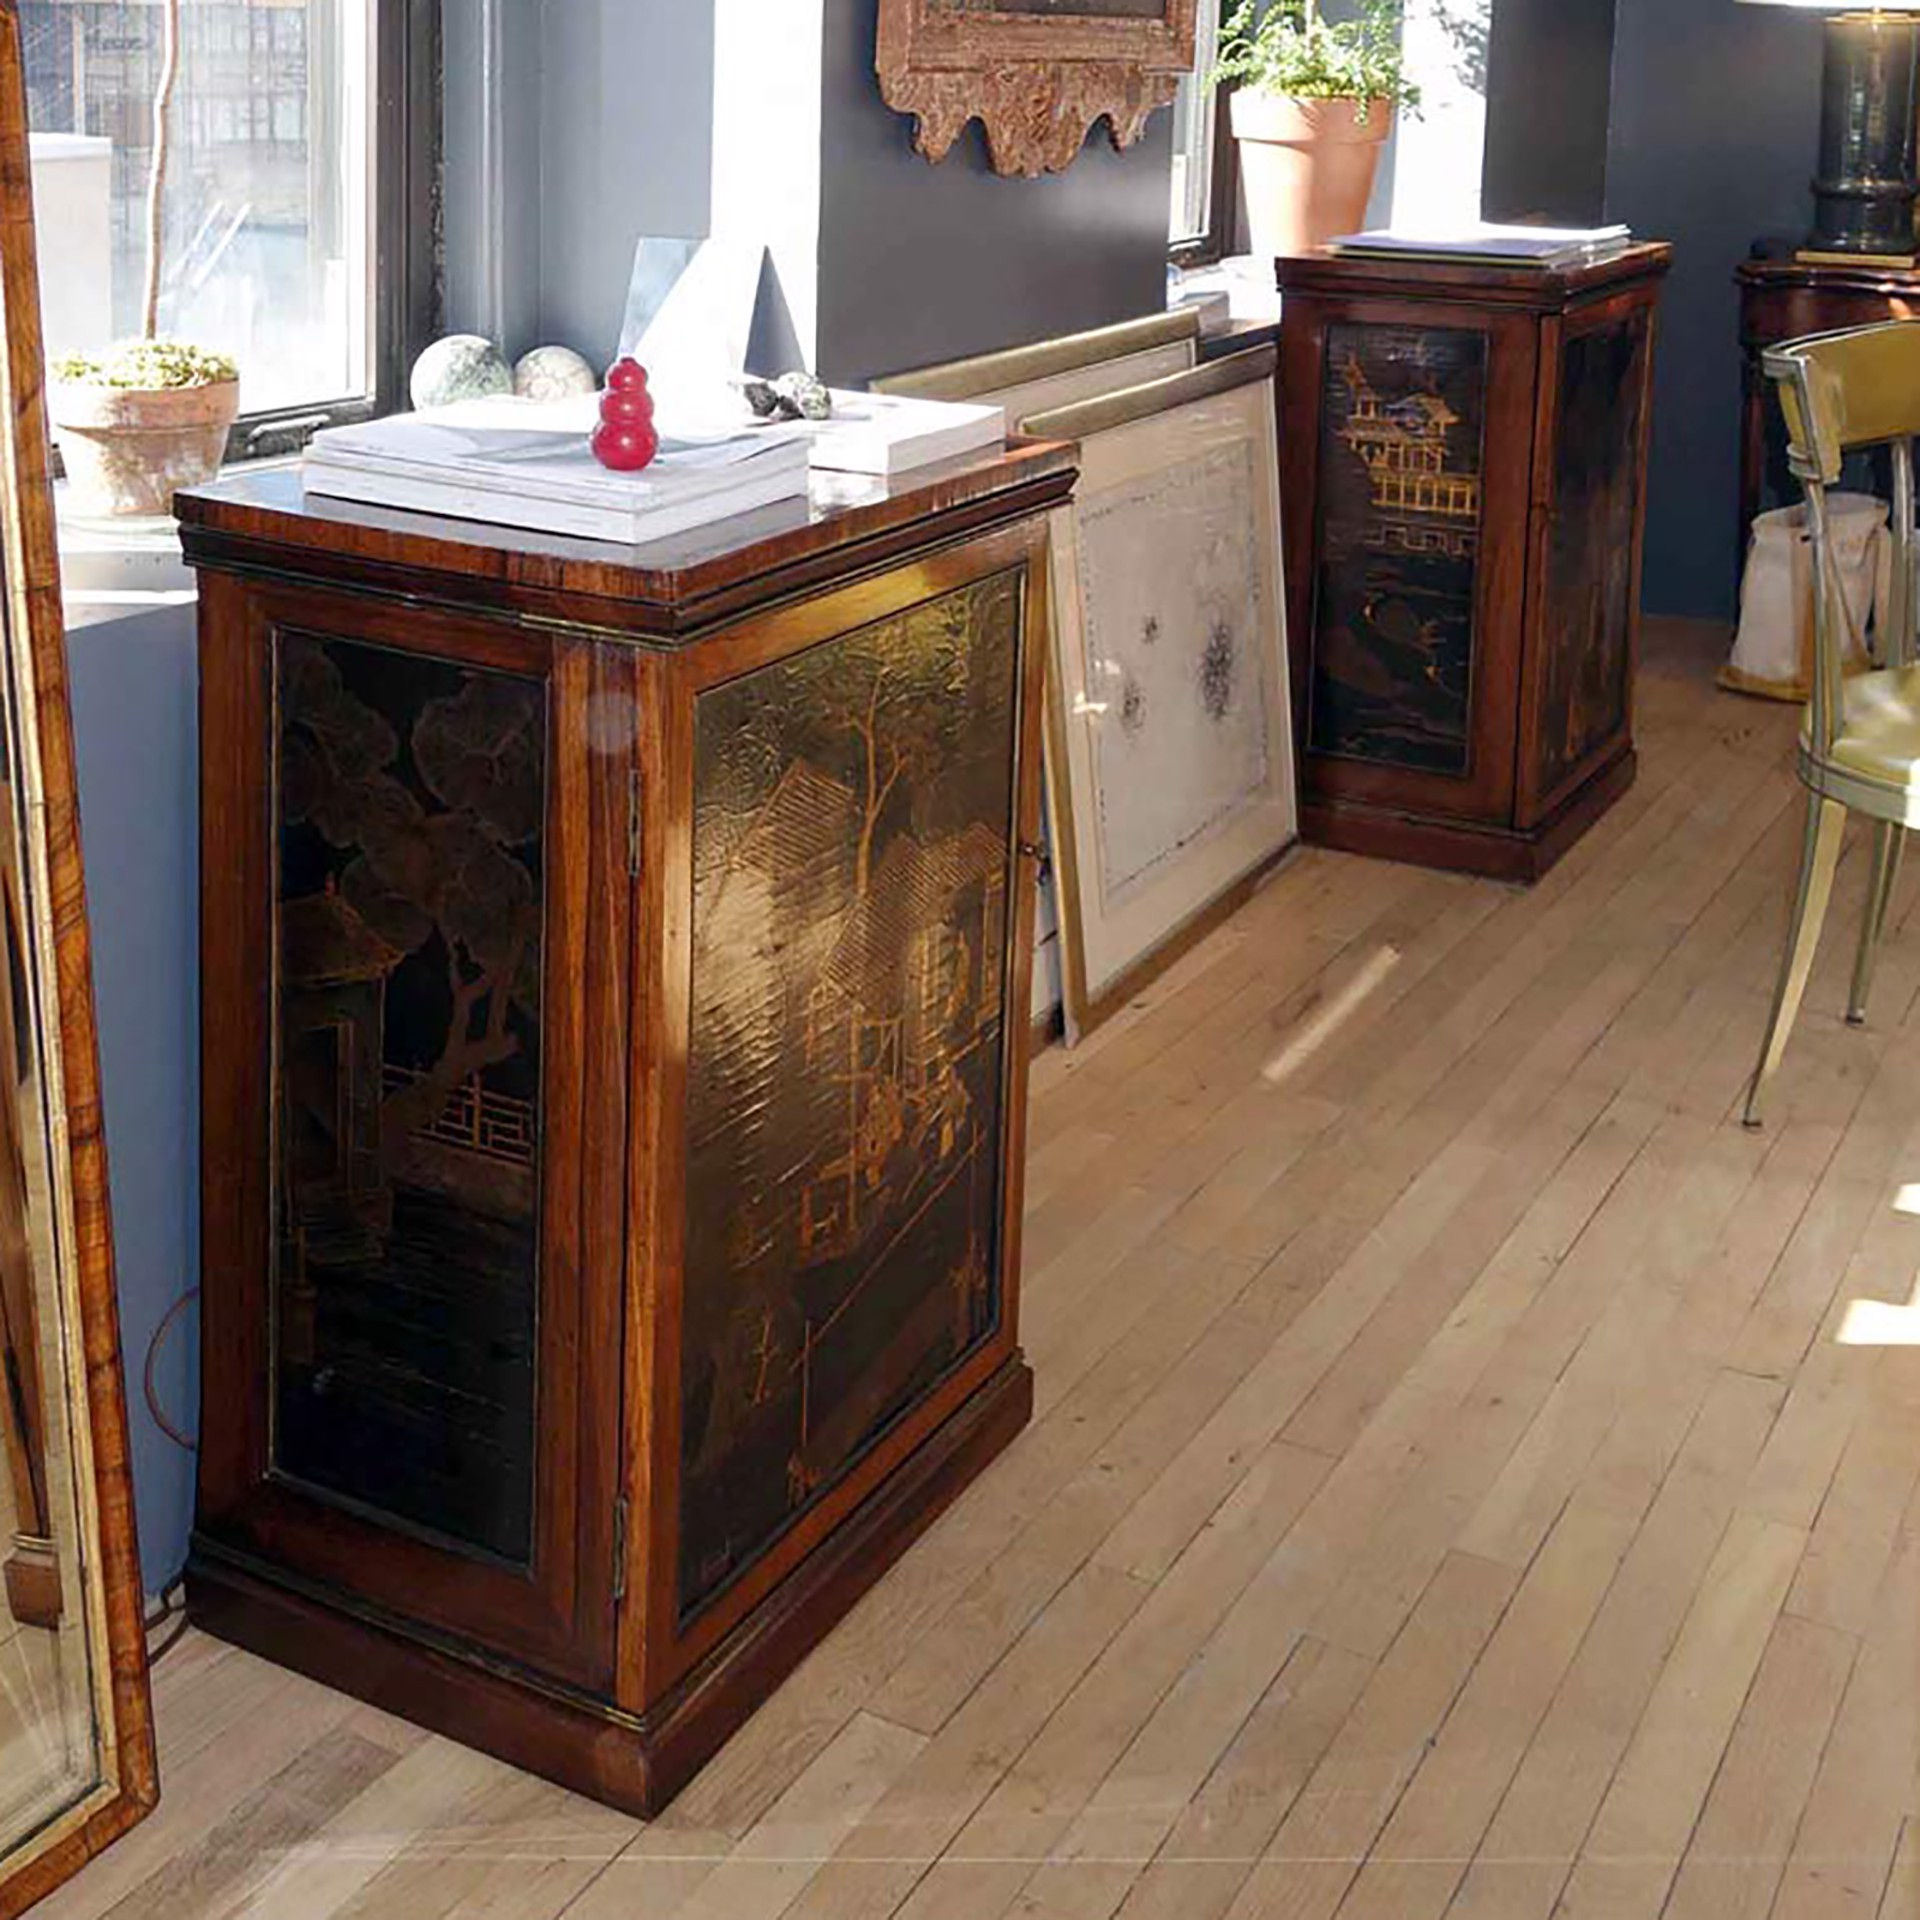 PAIR OF REGENCY LACQUER INSET ROSEWOOD CABINETS